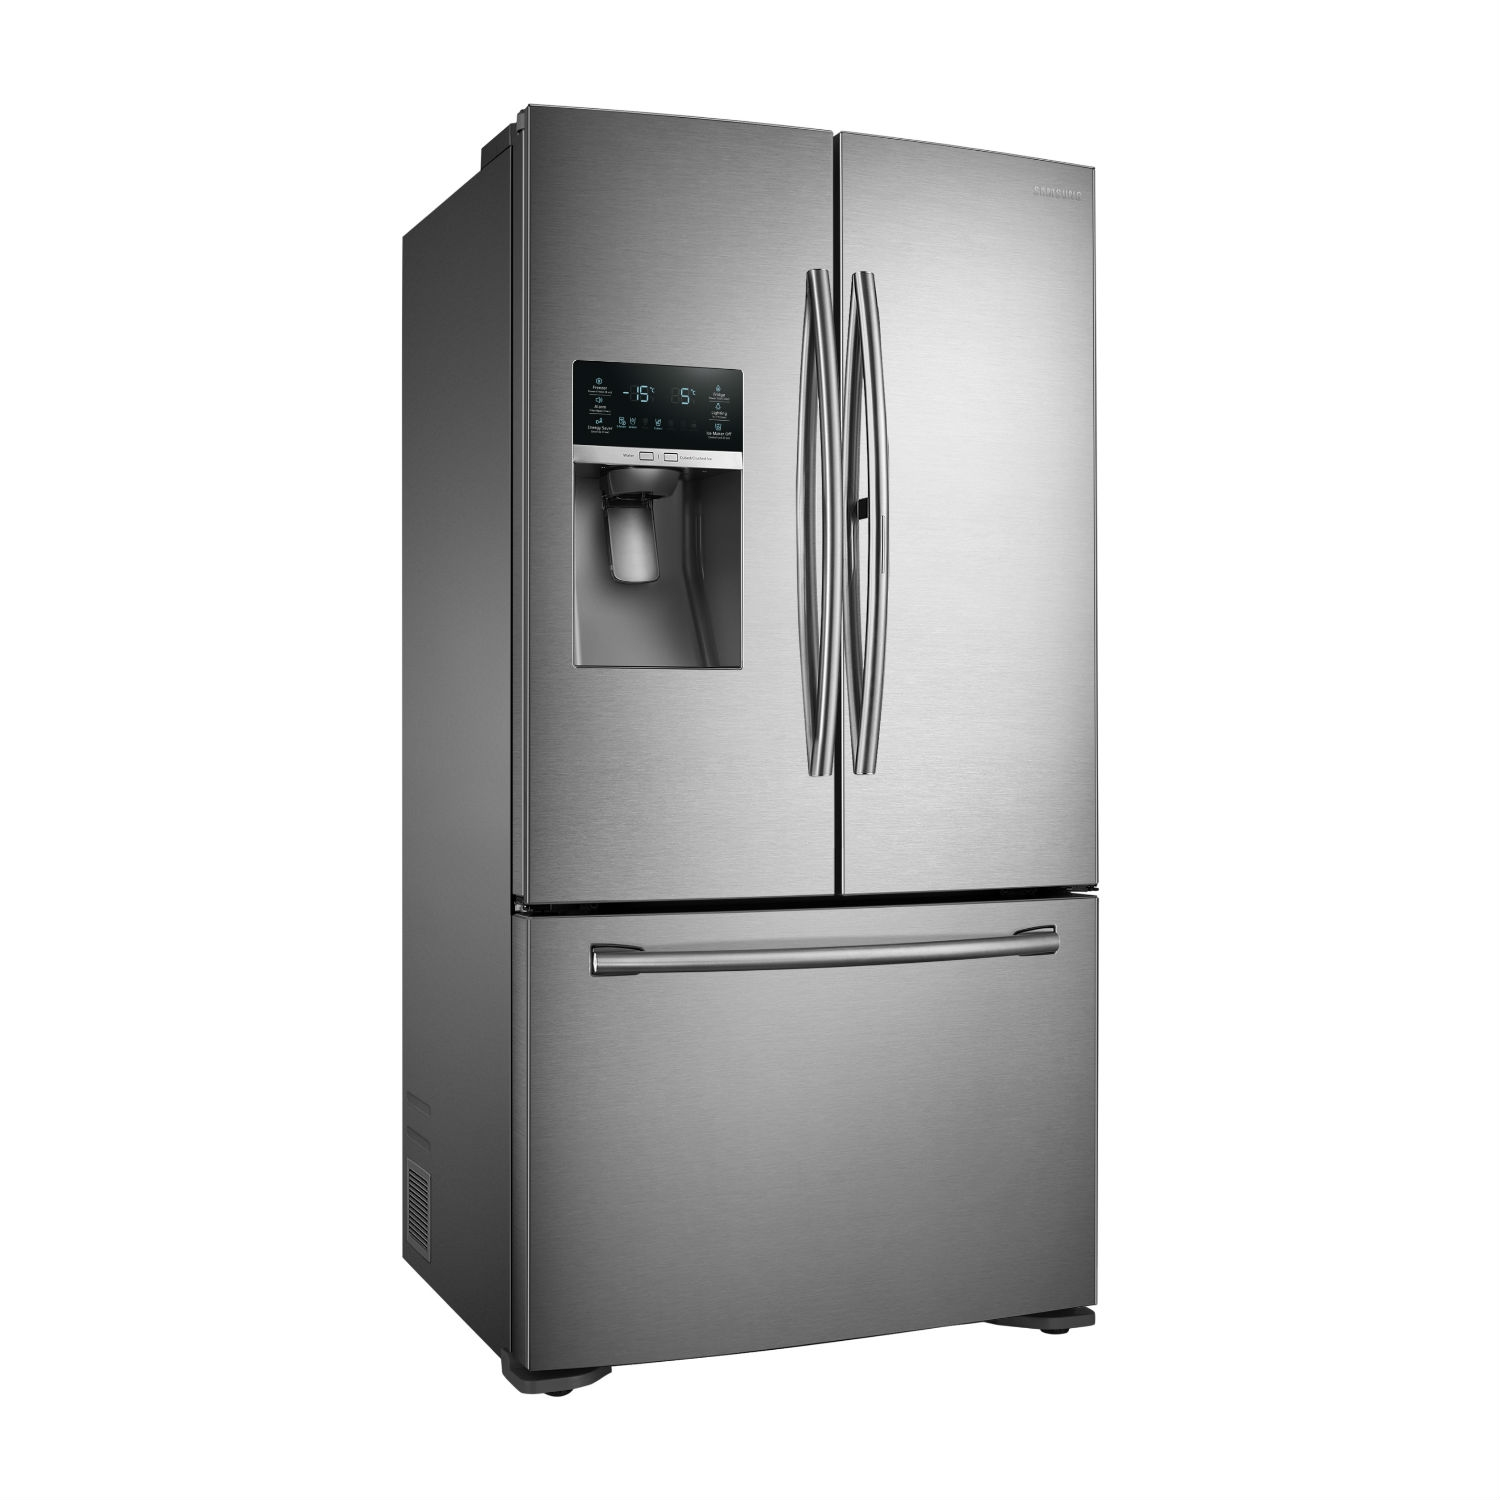 Samsung American Fridge Freezer - Stainless Steel - 8